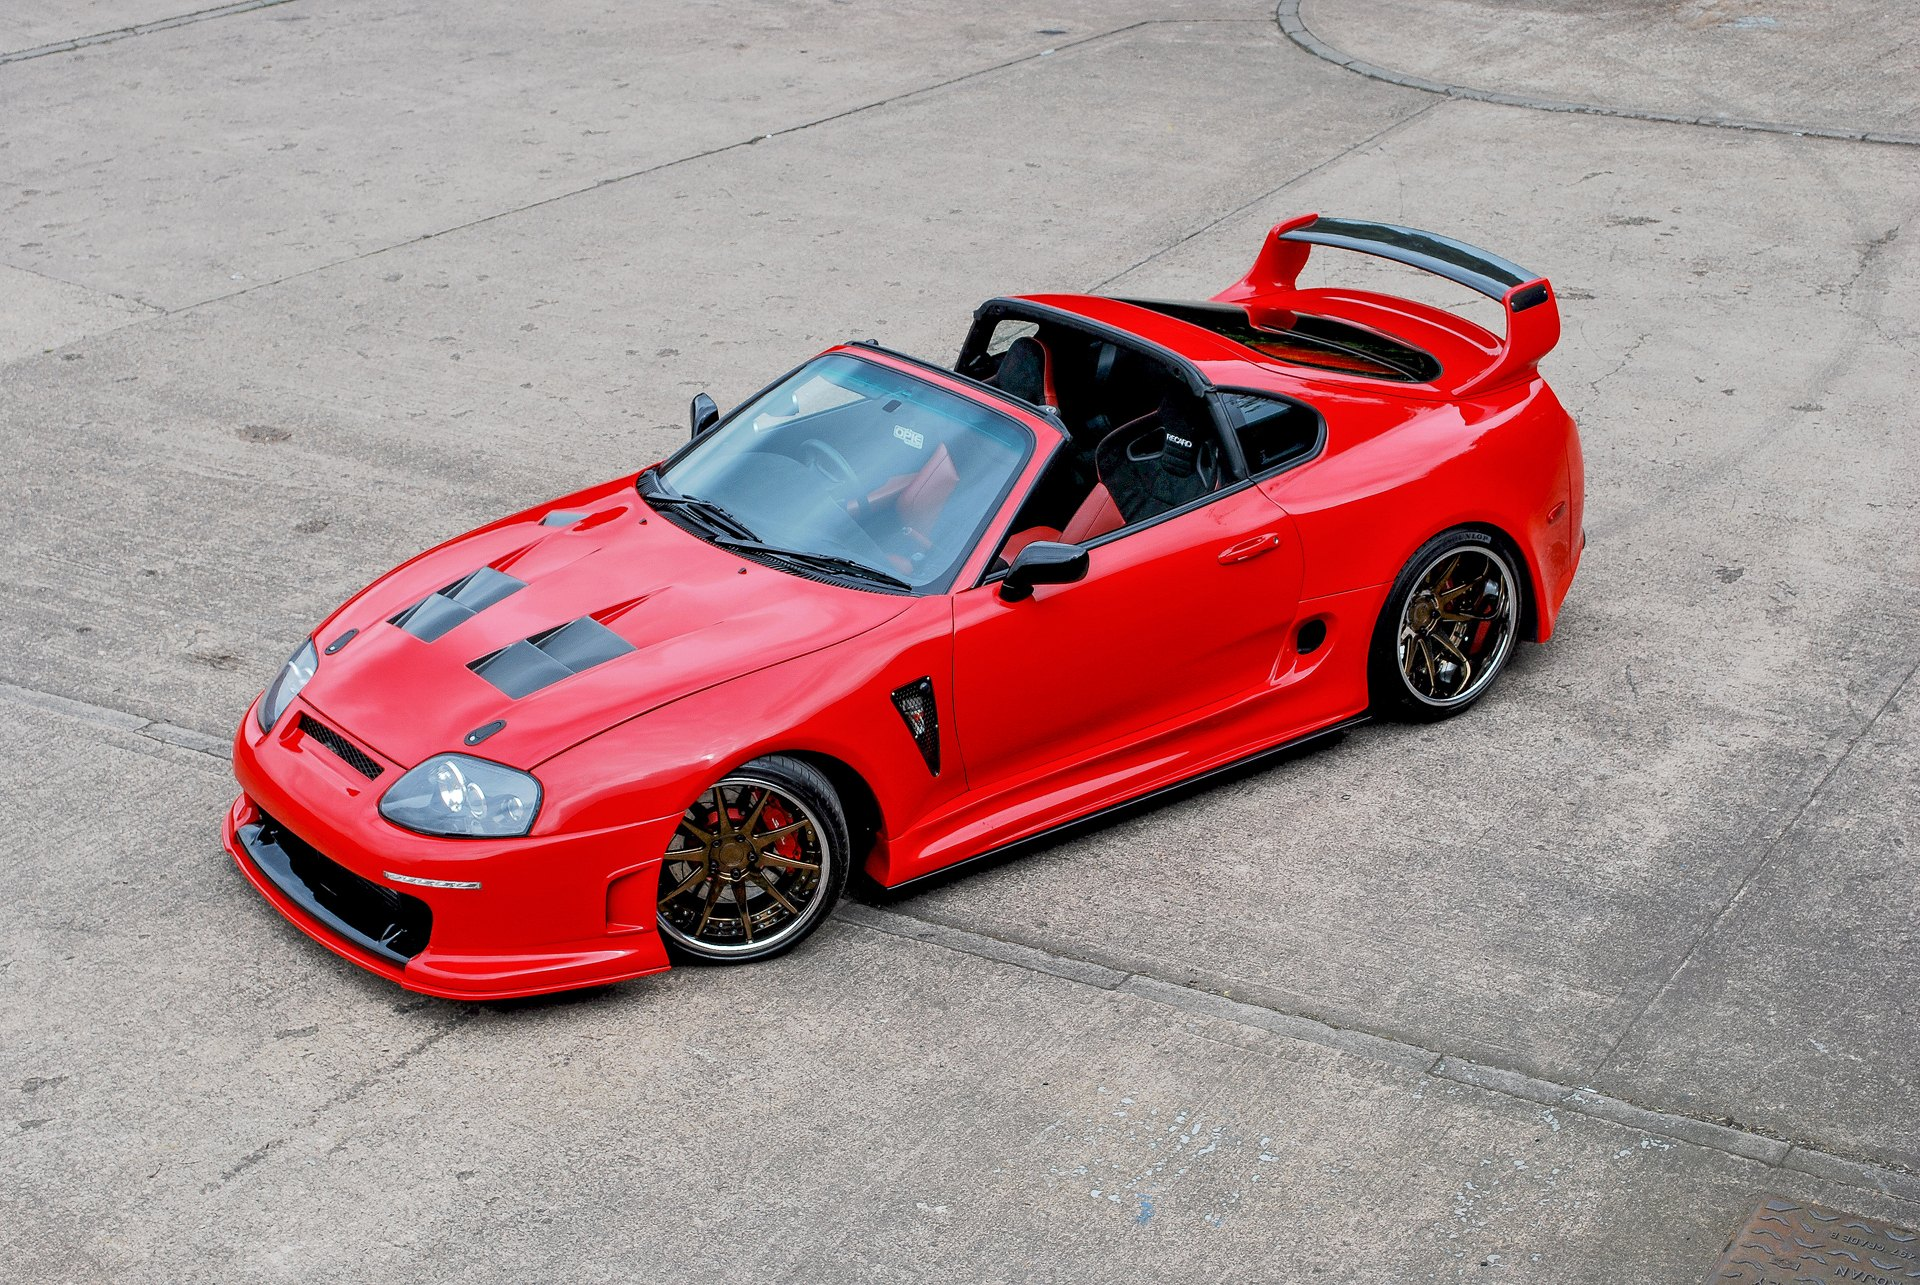 a red convertible